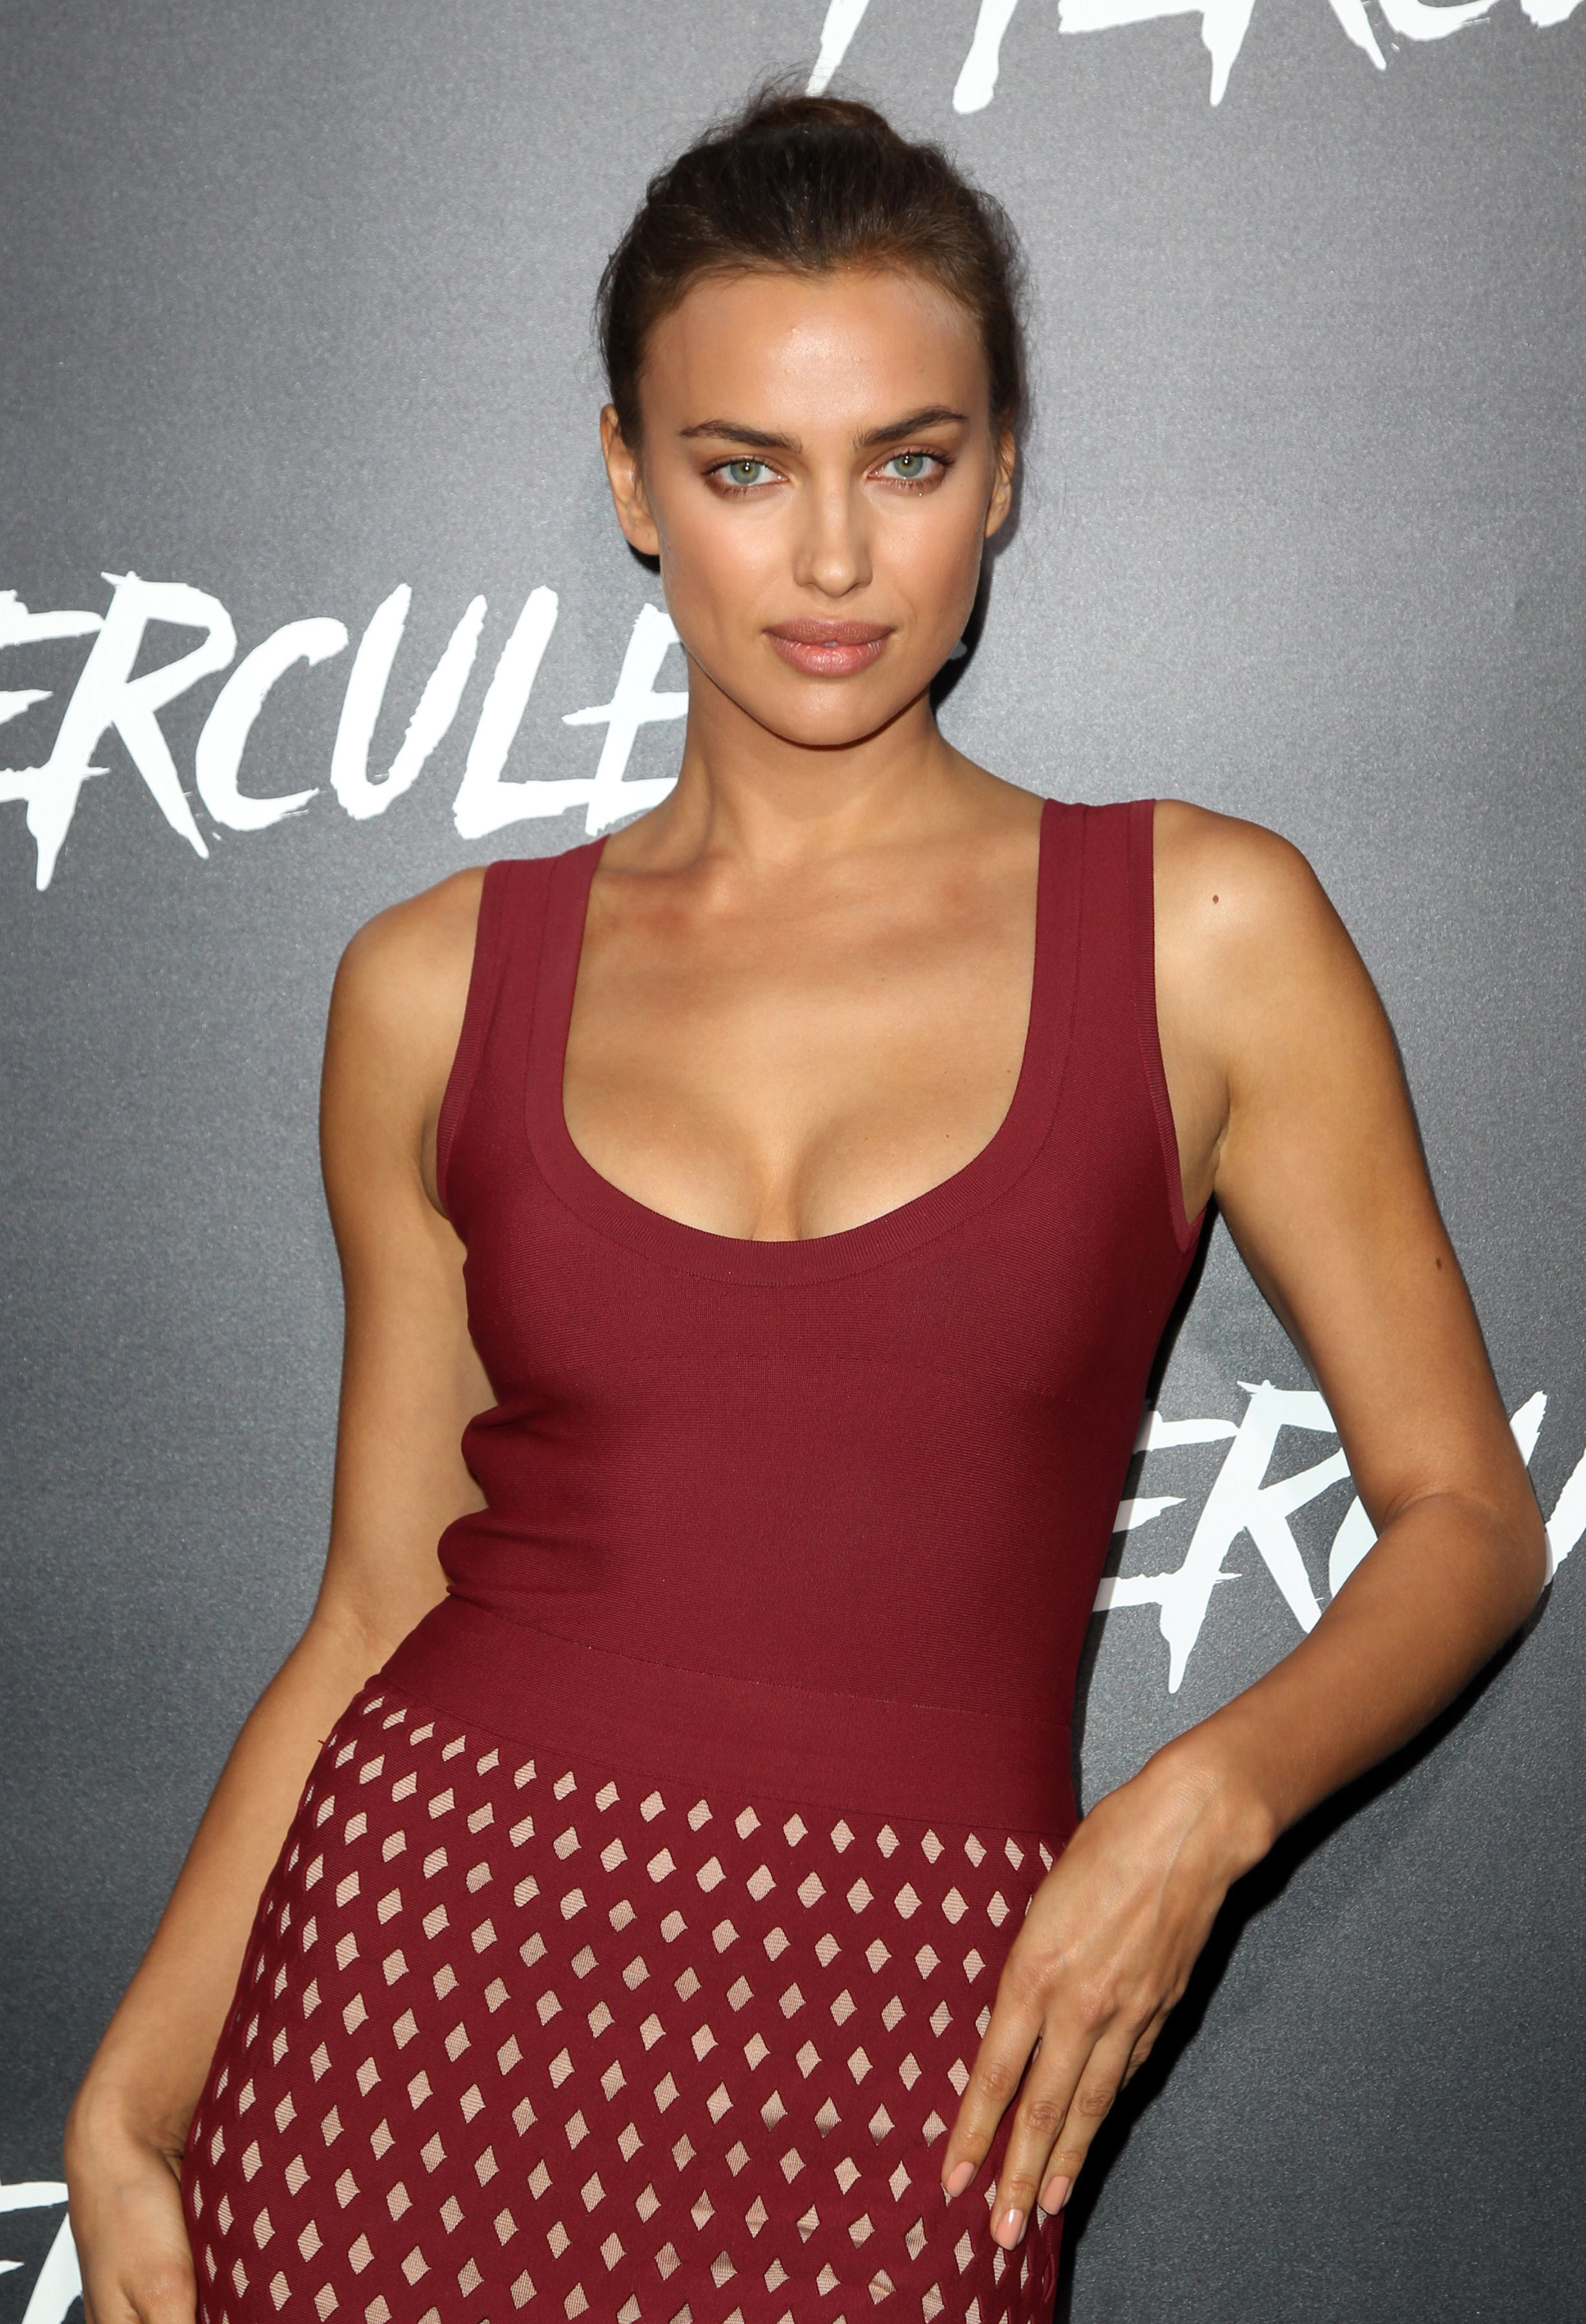 cb64c16d9b404 Irina Shayk attended the premiere of 'Hercules' held at the TCL Chinese  Theatre on